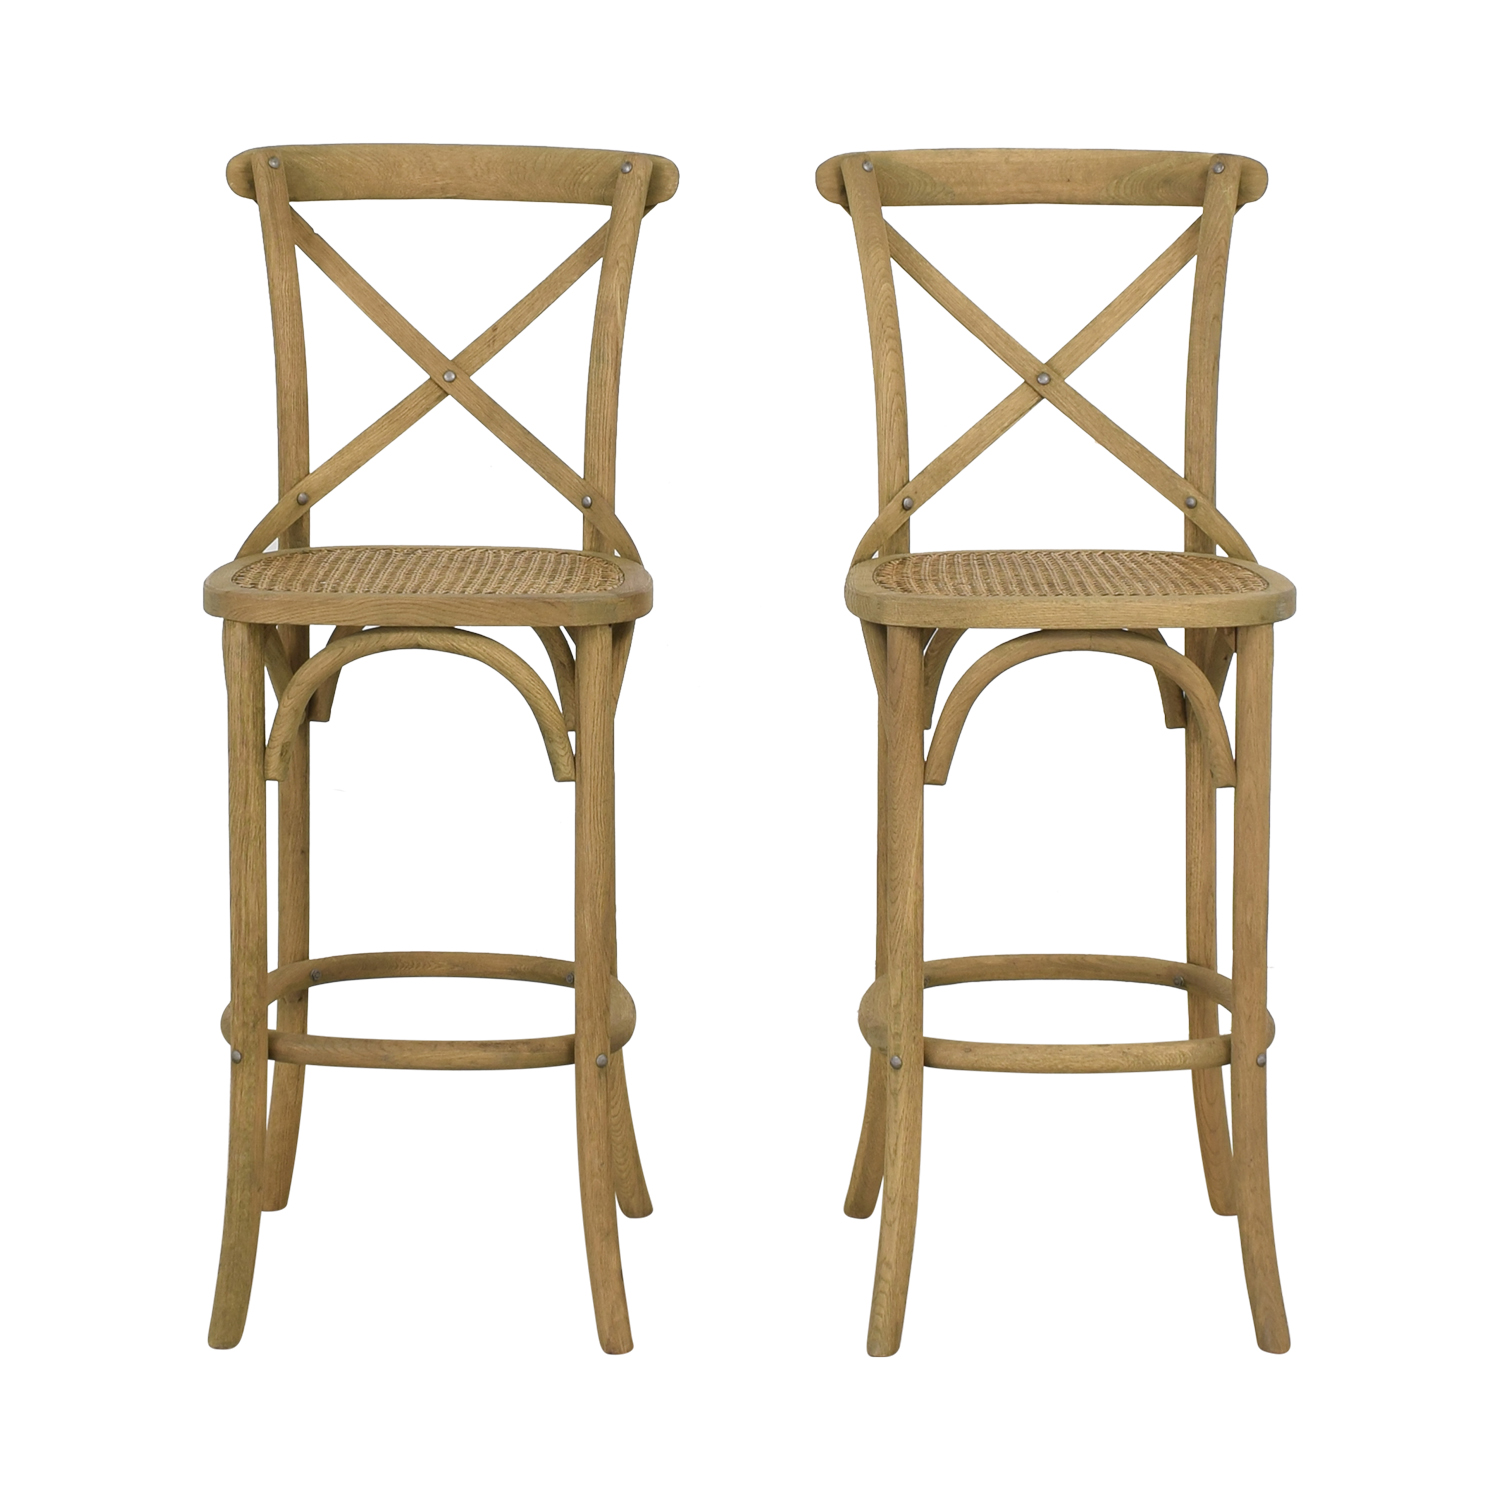 Restoration Hardware Madeleine Bar Stool / Chairs